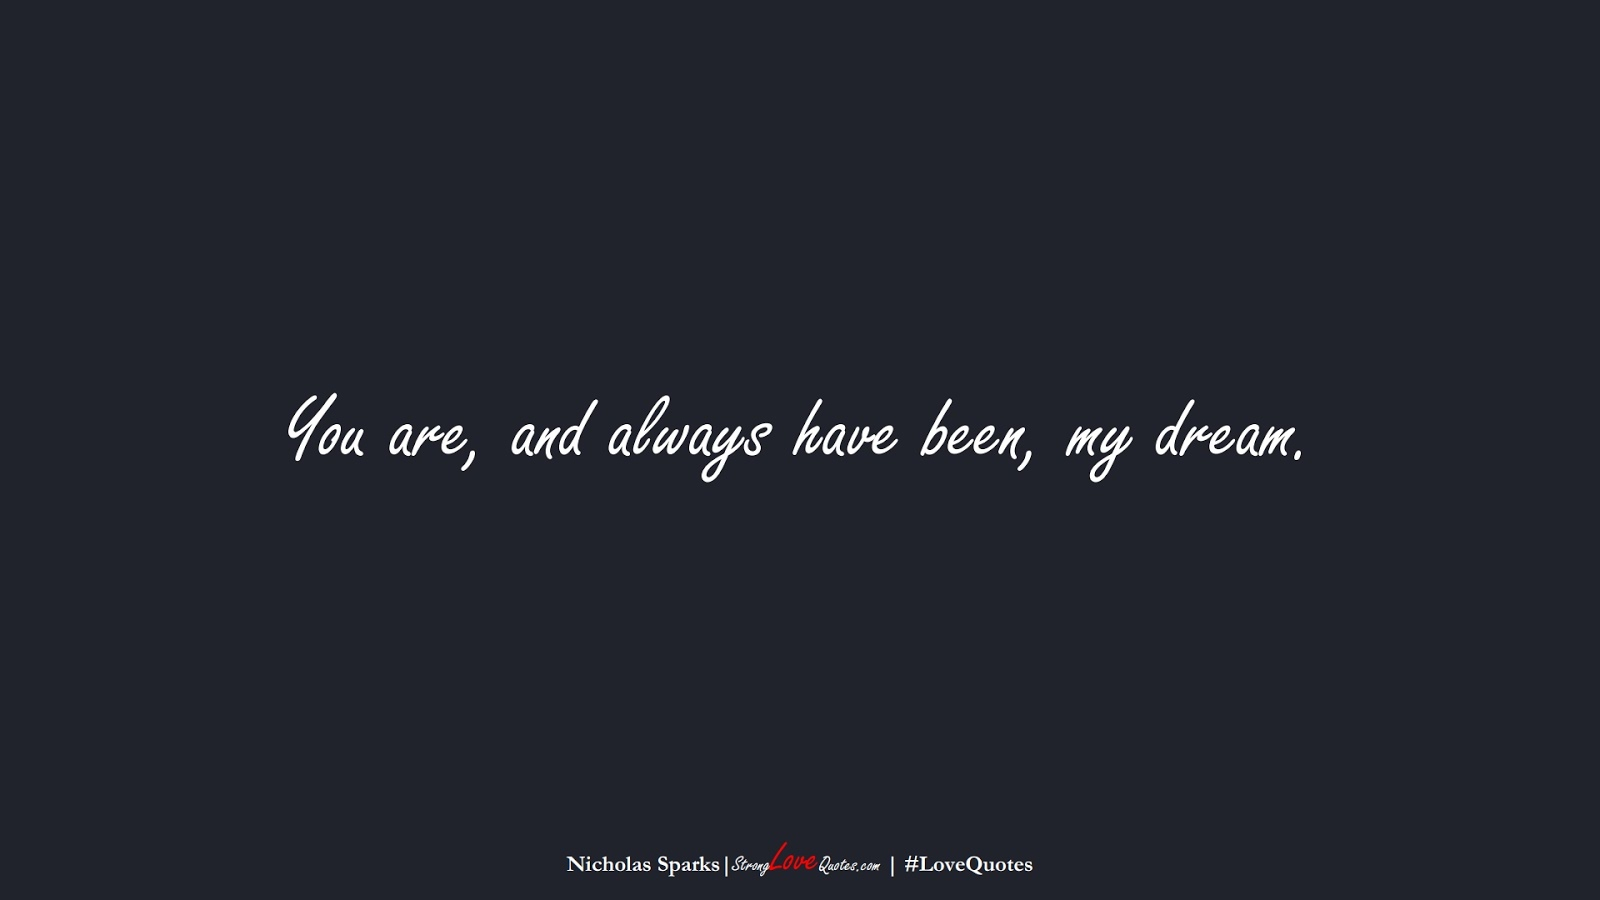 You are, and always have been, my dream. (Nicholas Sparks);  #LoveQuotes